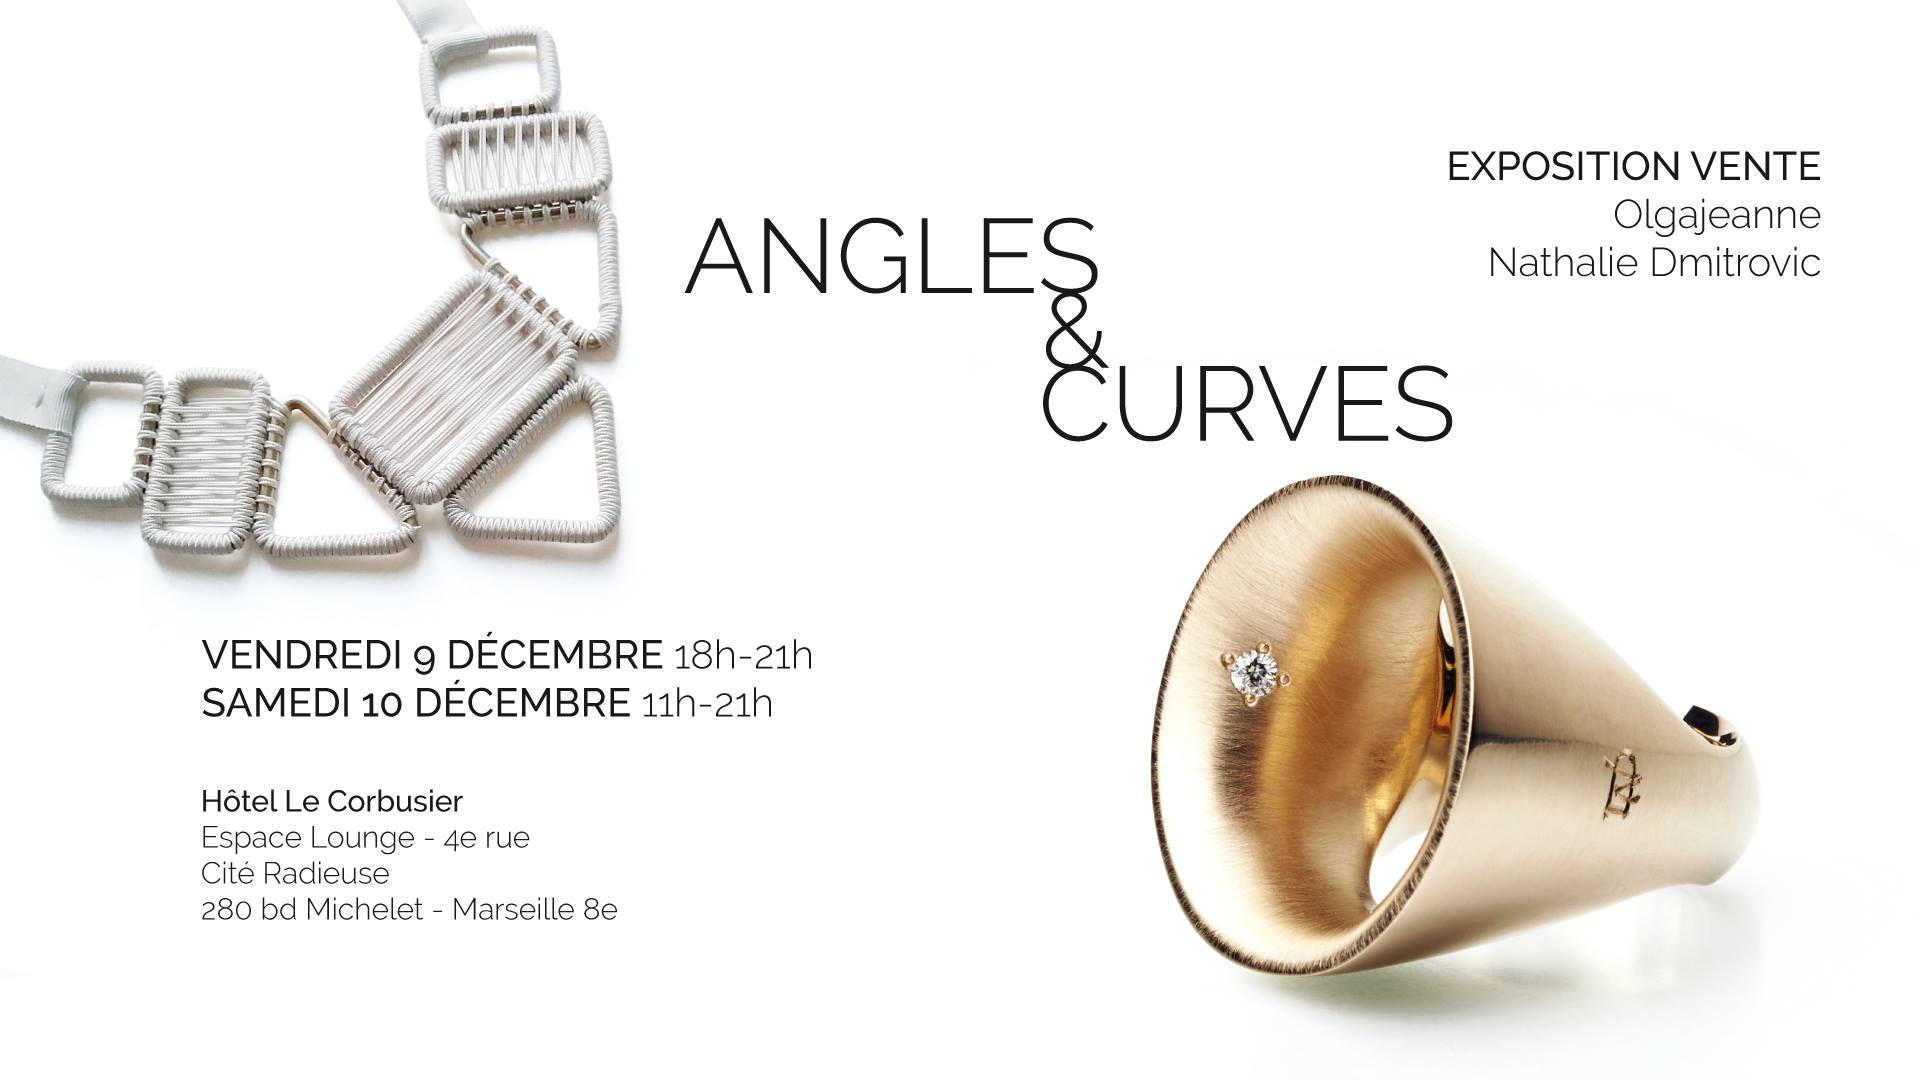 angles-et-curves-expo-vente-art